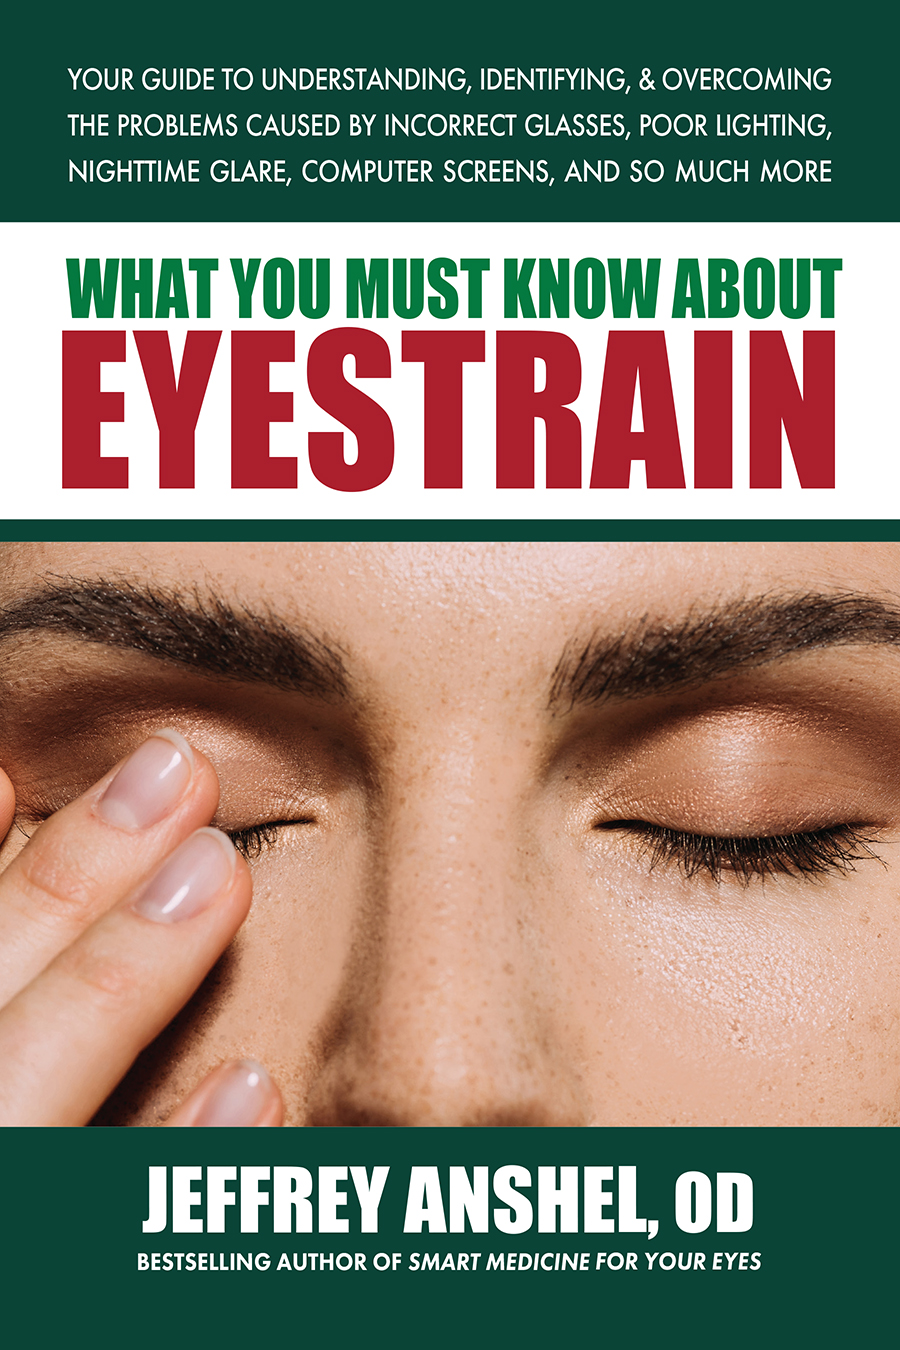 What You Must Know About Eyestrain